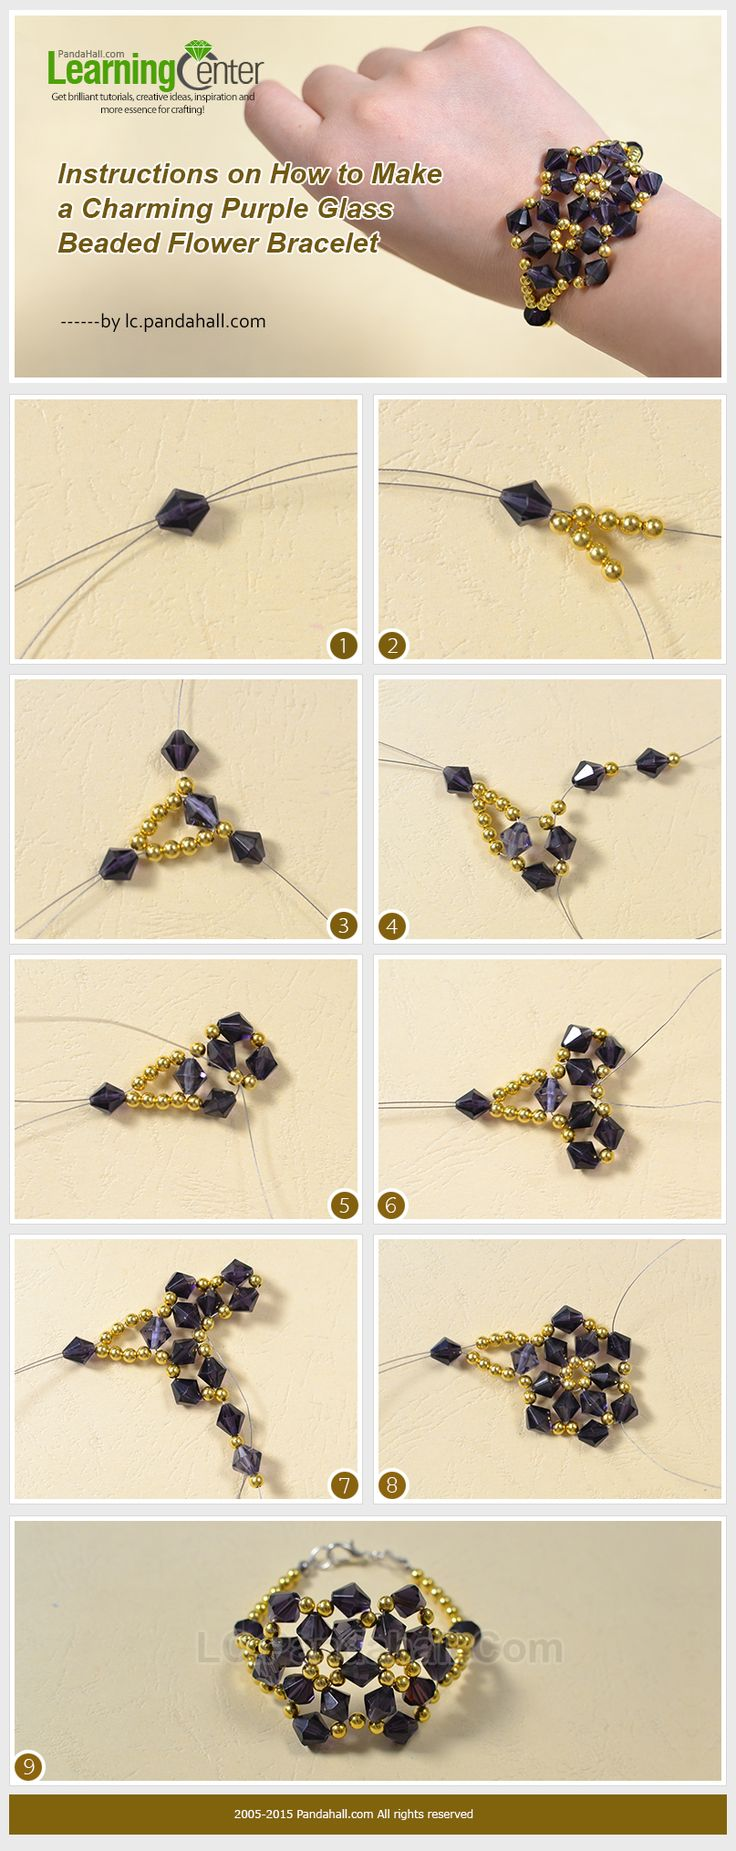 Beads instructions - Instructions On How To Make A Charming Purple Glass Beaded Flower Bracelet